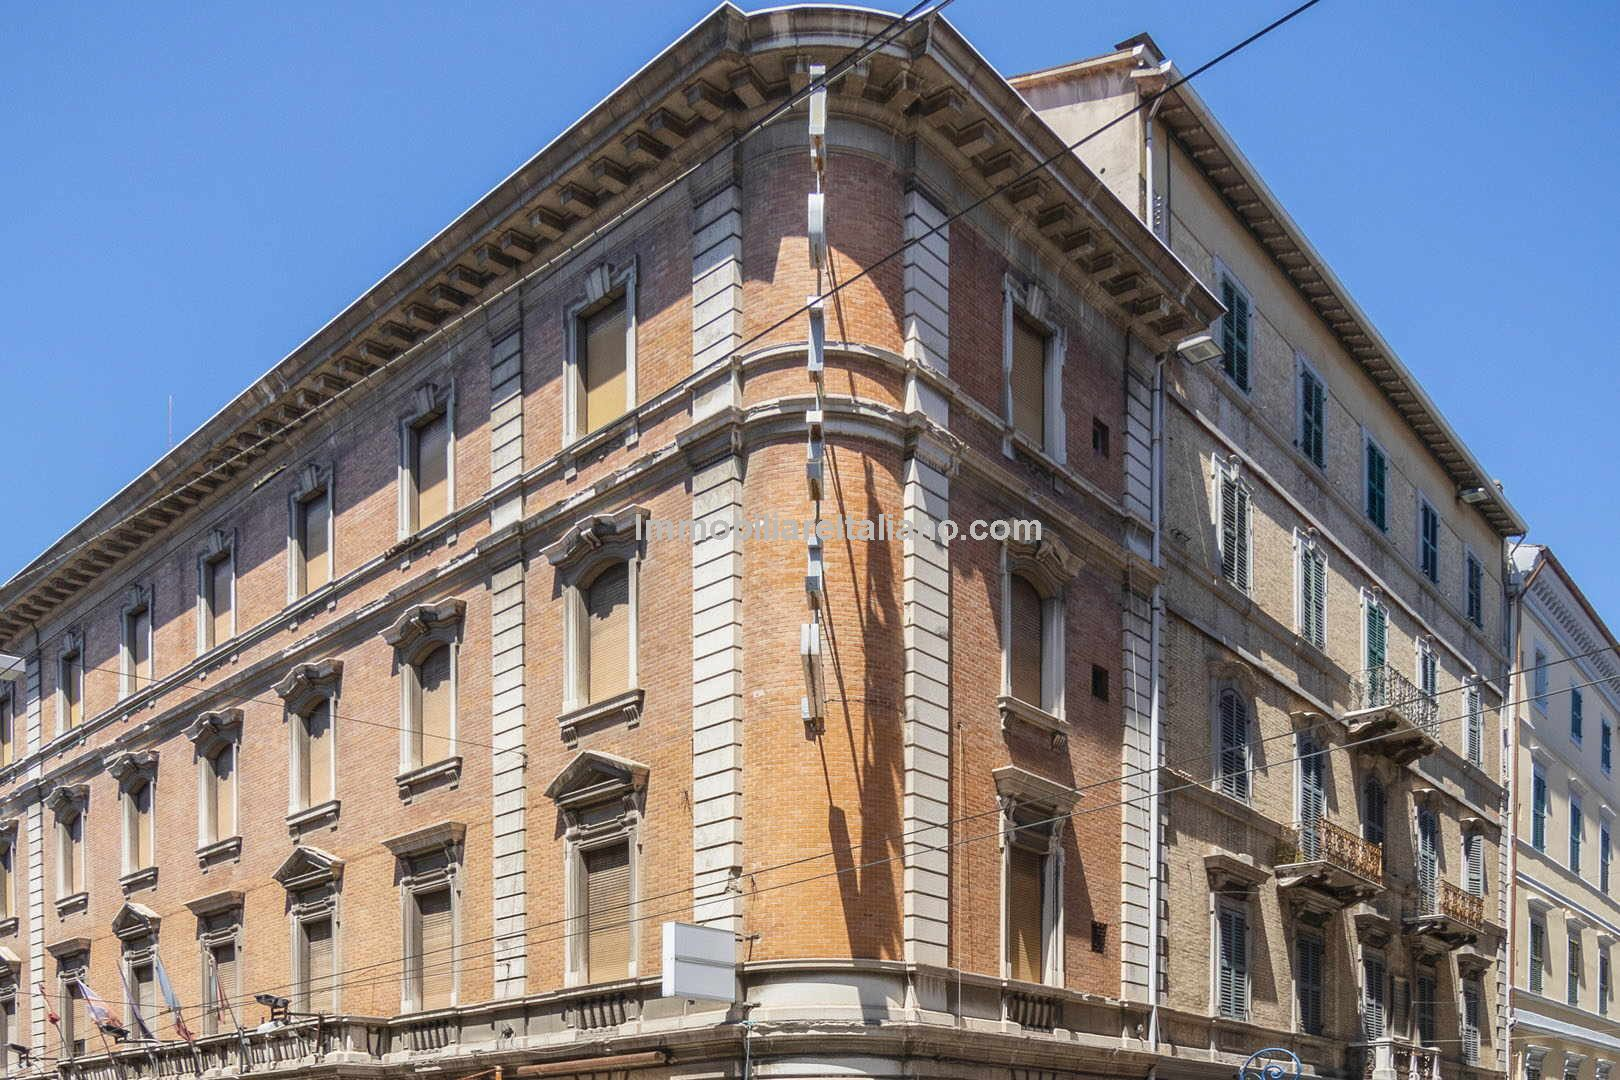 Hotel in Italy for sale